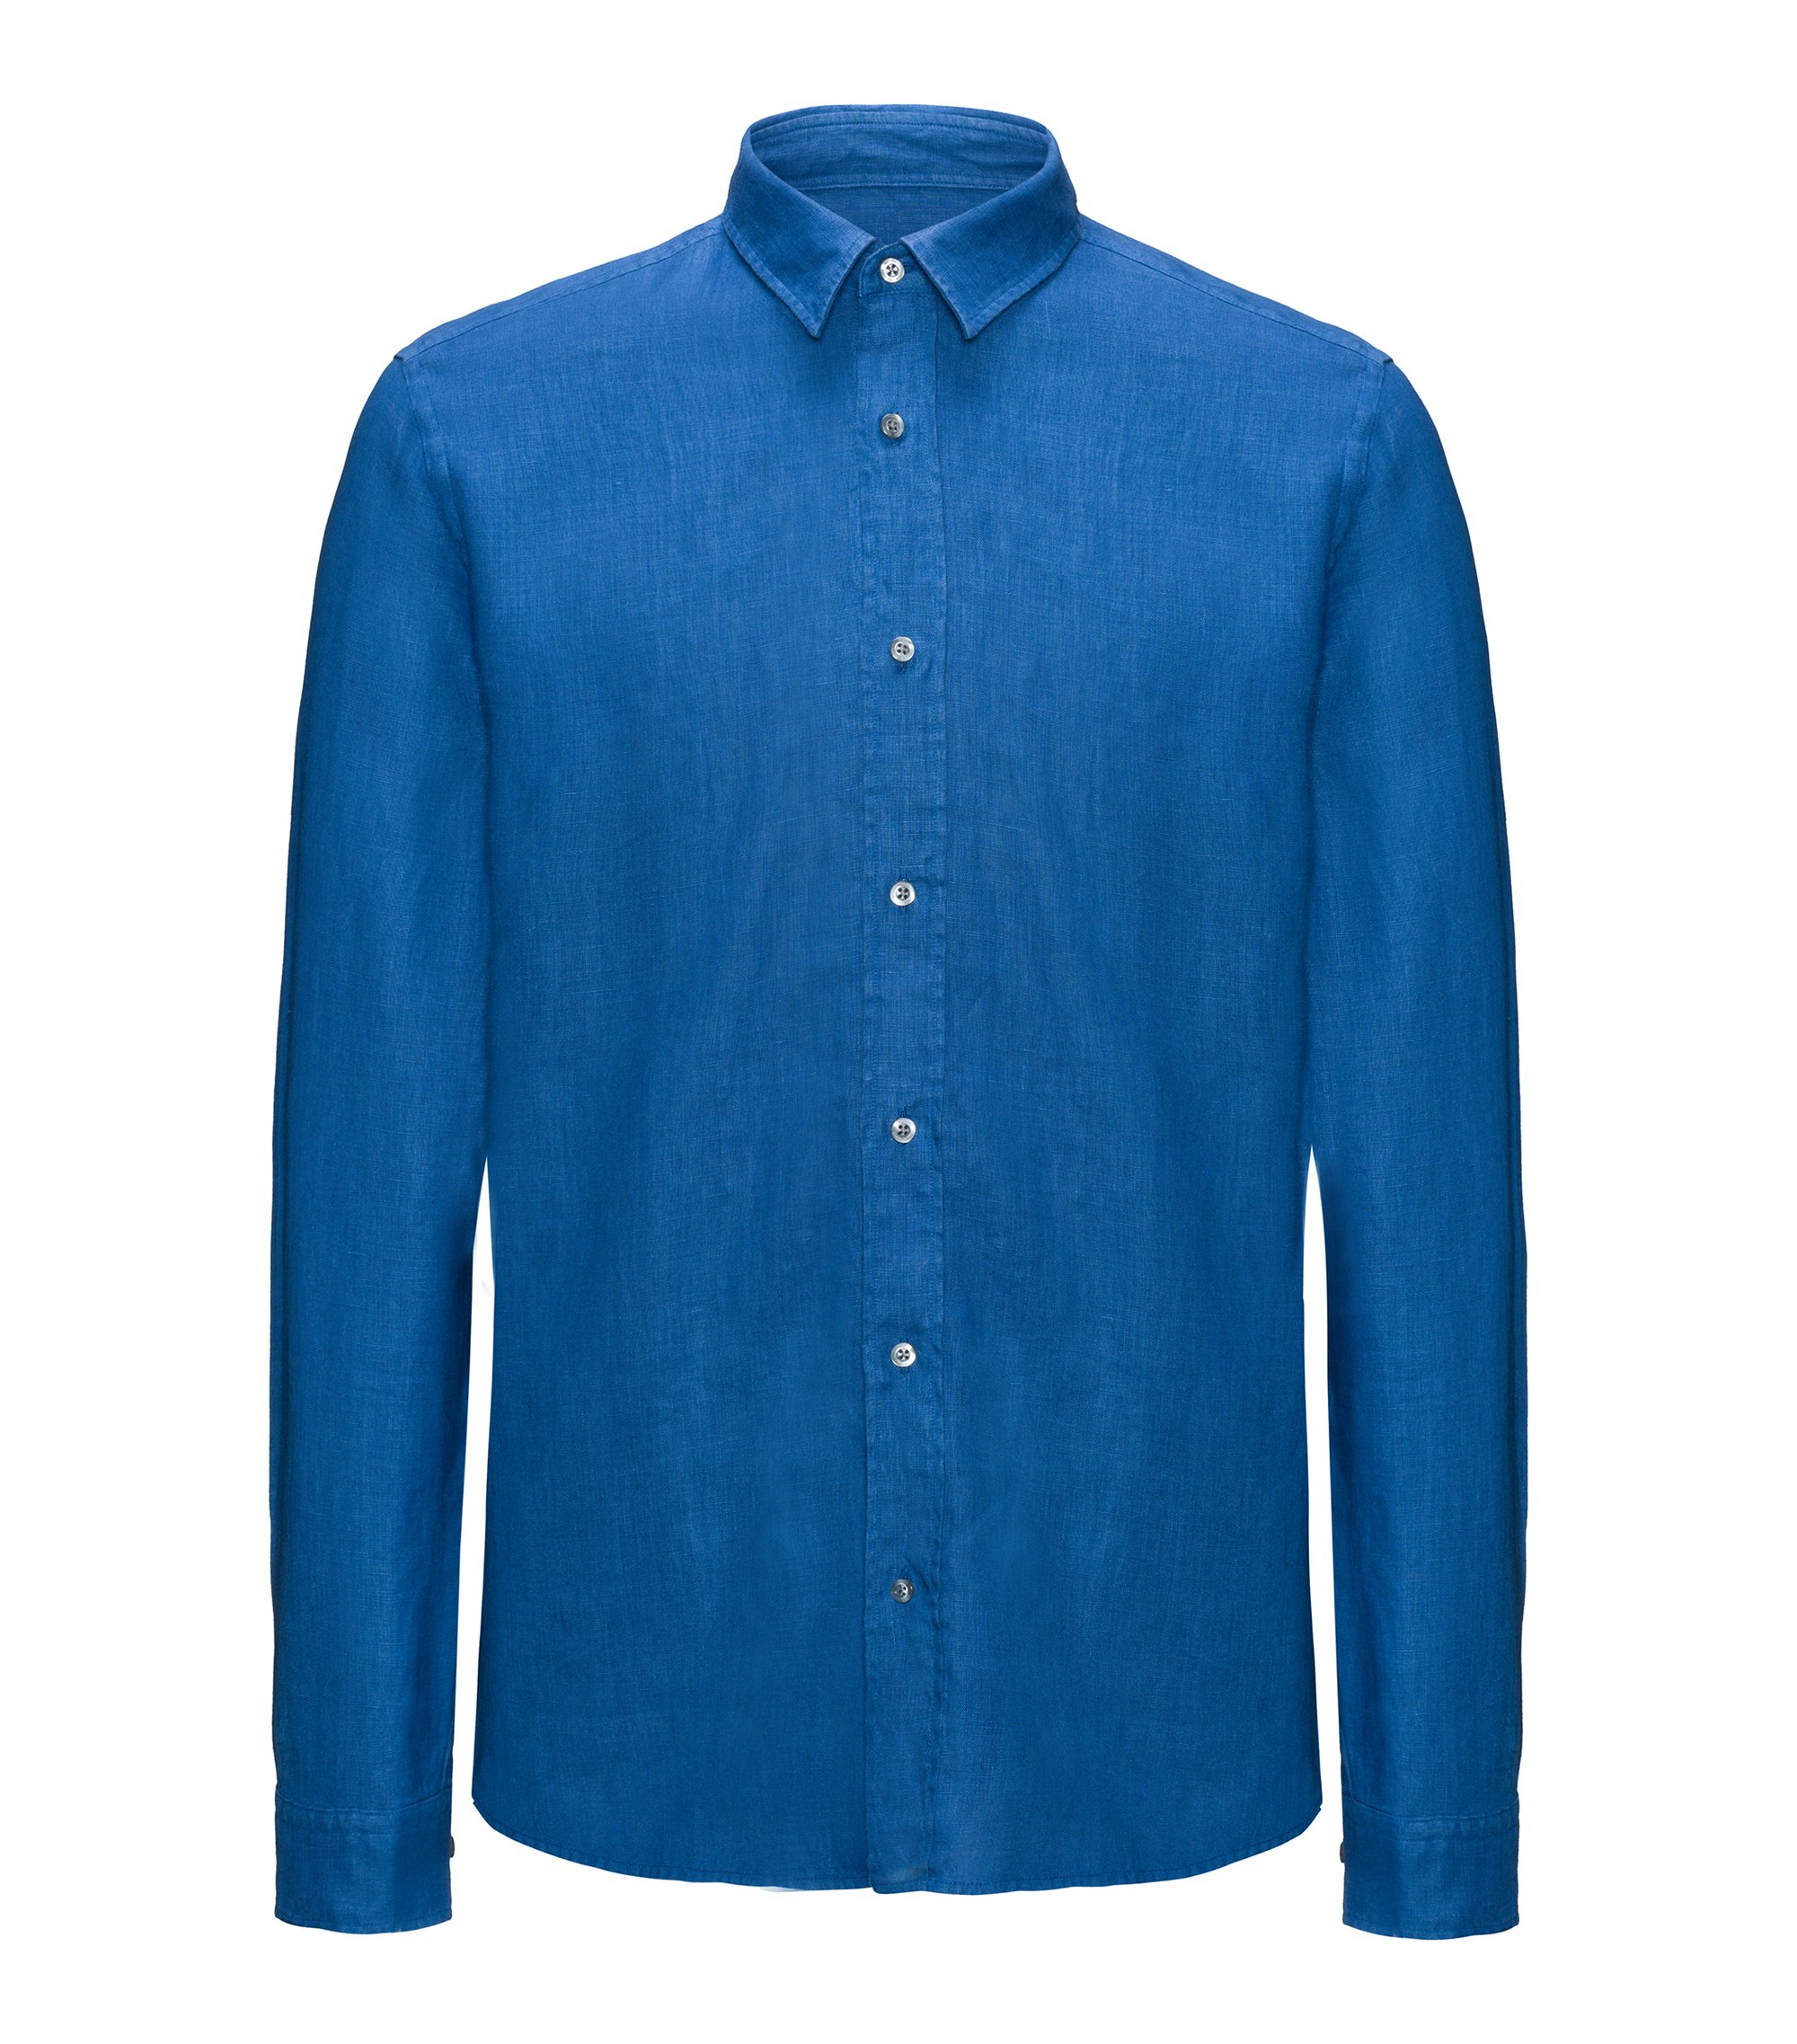 Linen Sport Shirt, Relaxed Fit | Evory, Open Blue